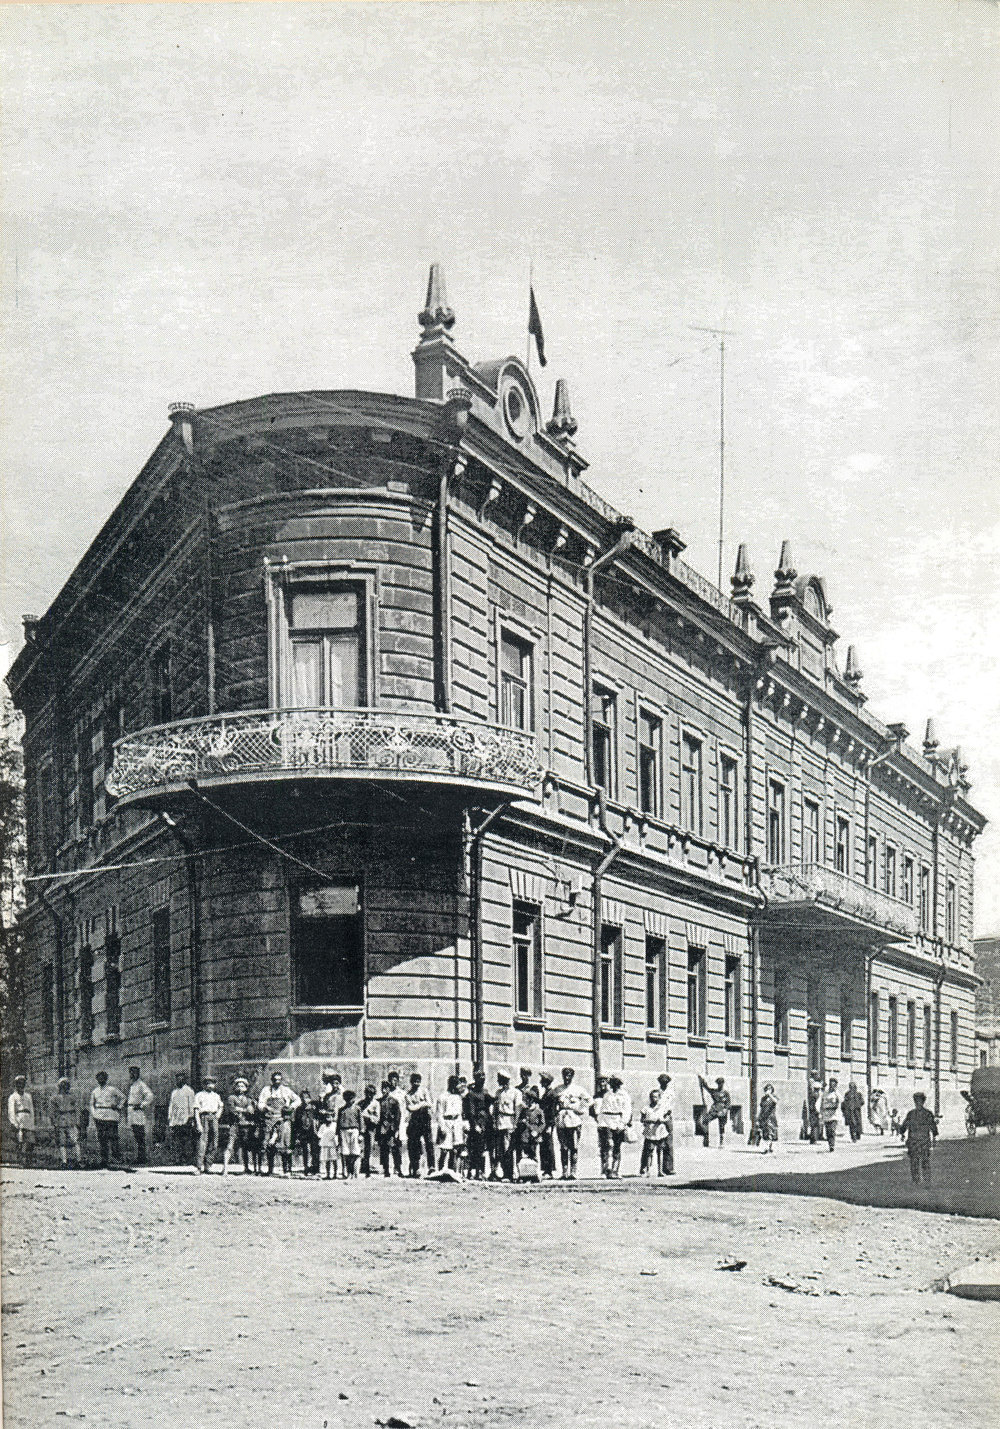 Government-House-of-Republic-of-Armenia-1918-1920.jpg